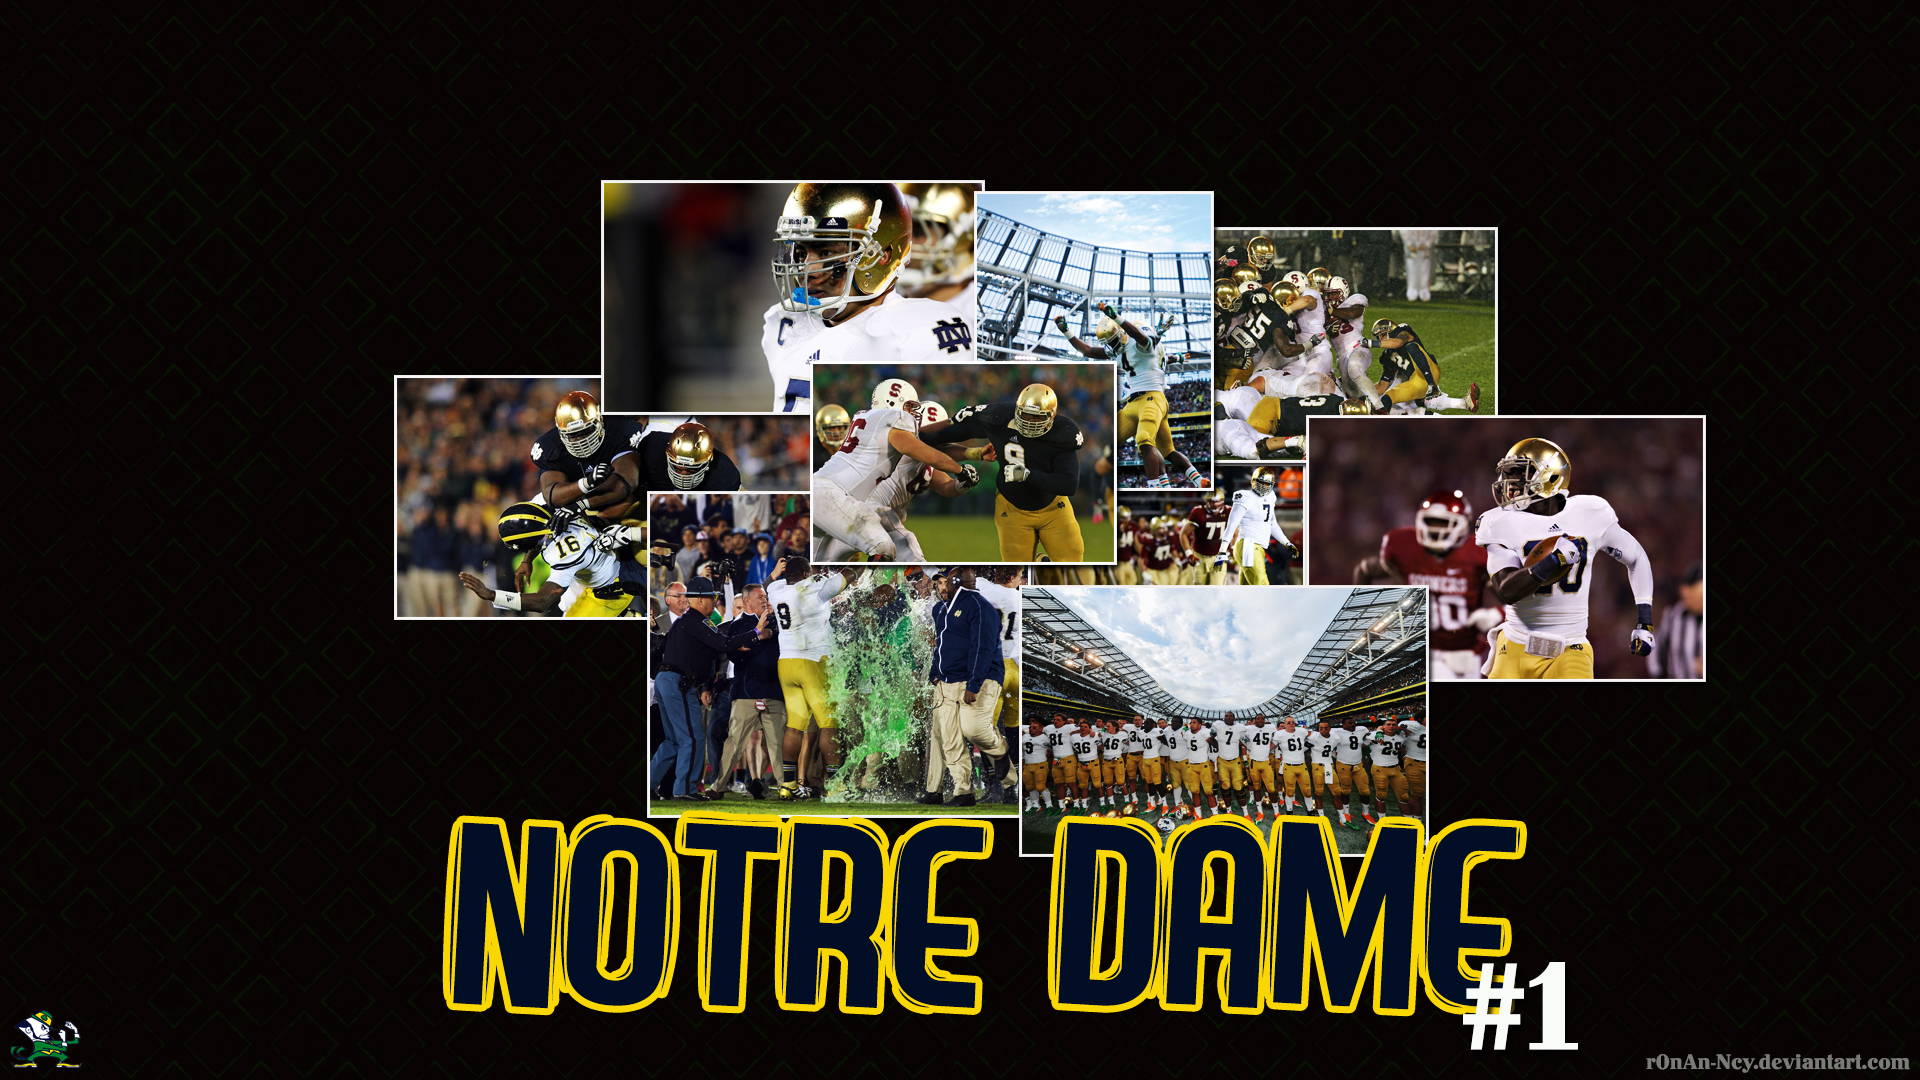 Notre Dame 1 by rOnAn Ncy Page at 1920 x 1080 1920x1080